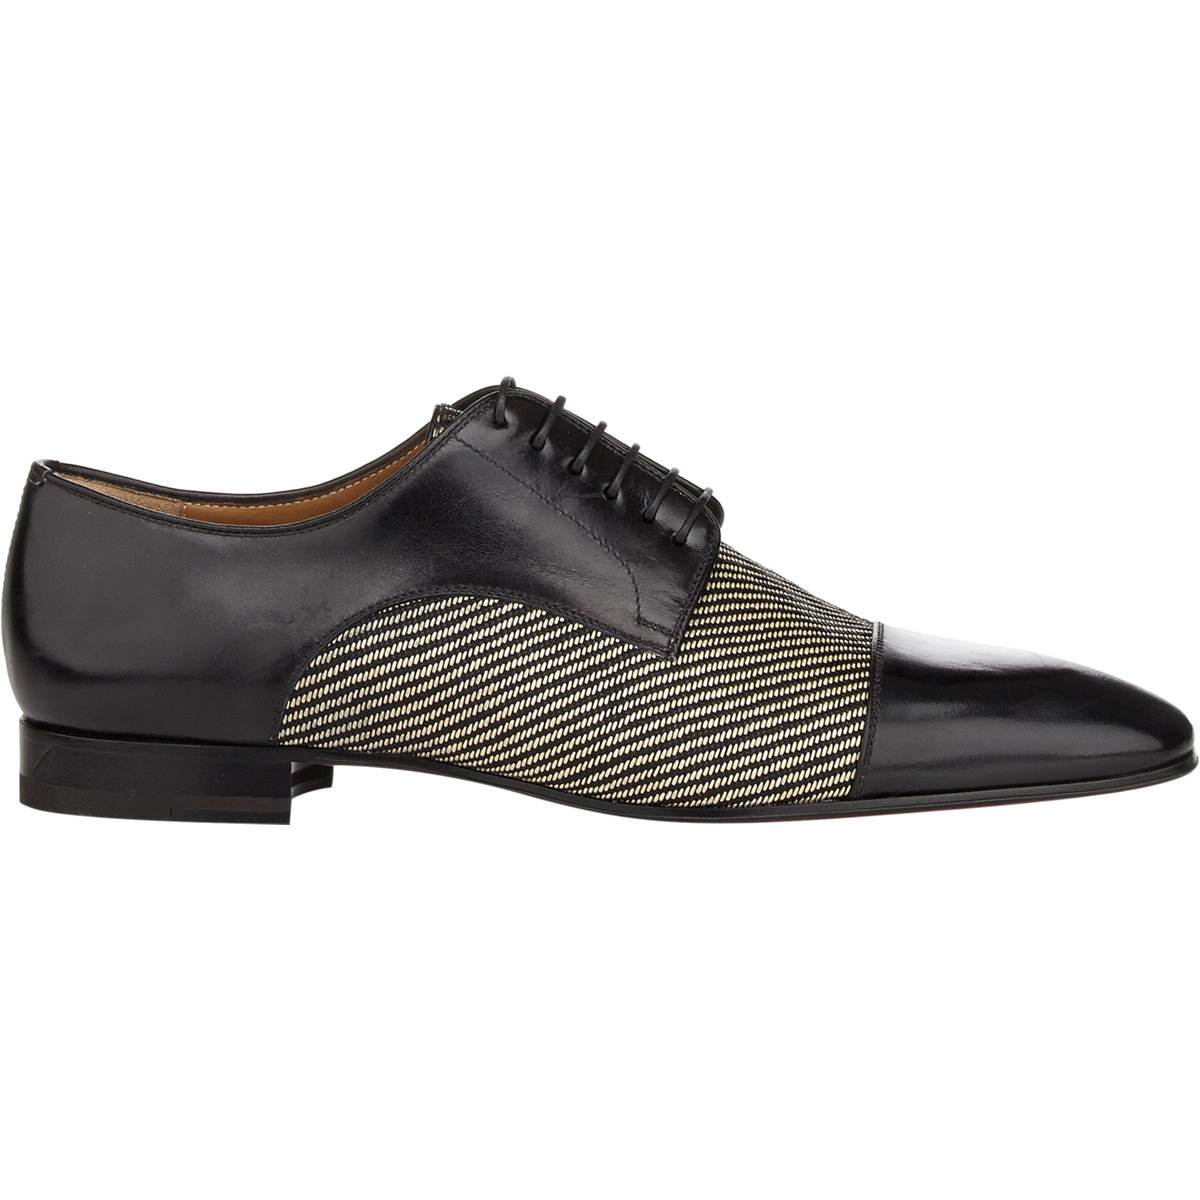 Christian Louboutin Oxford Popular